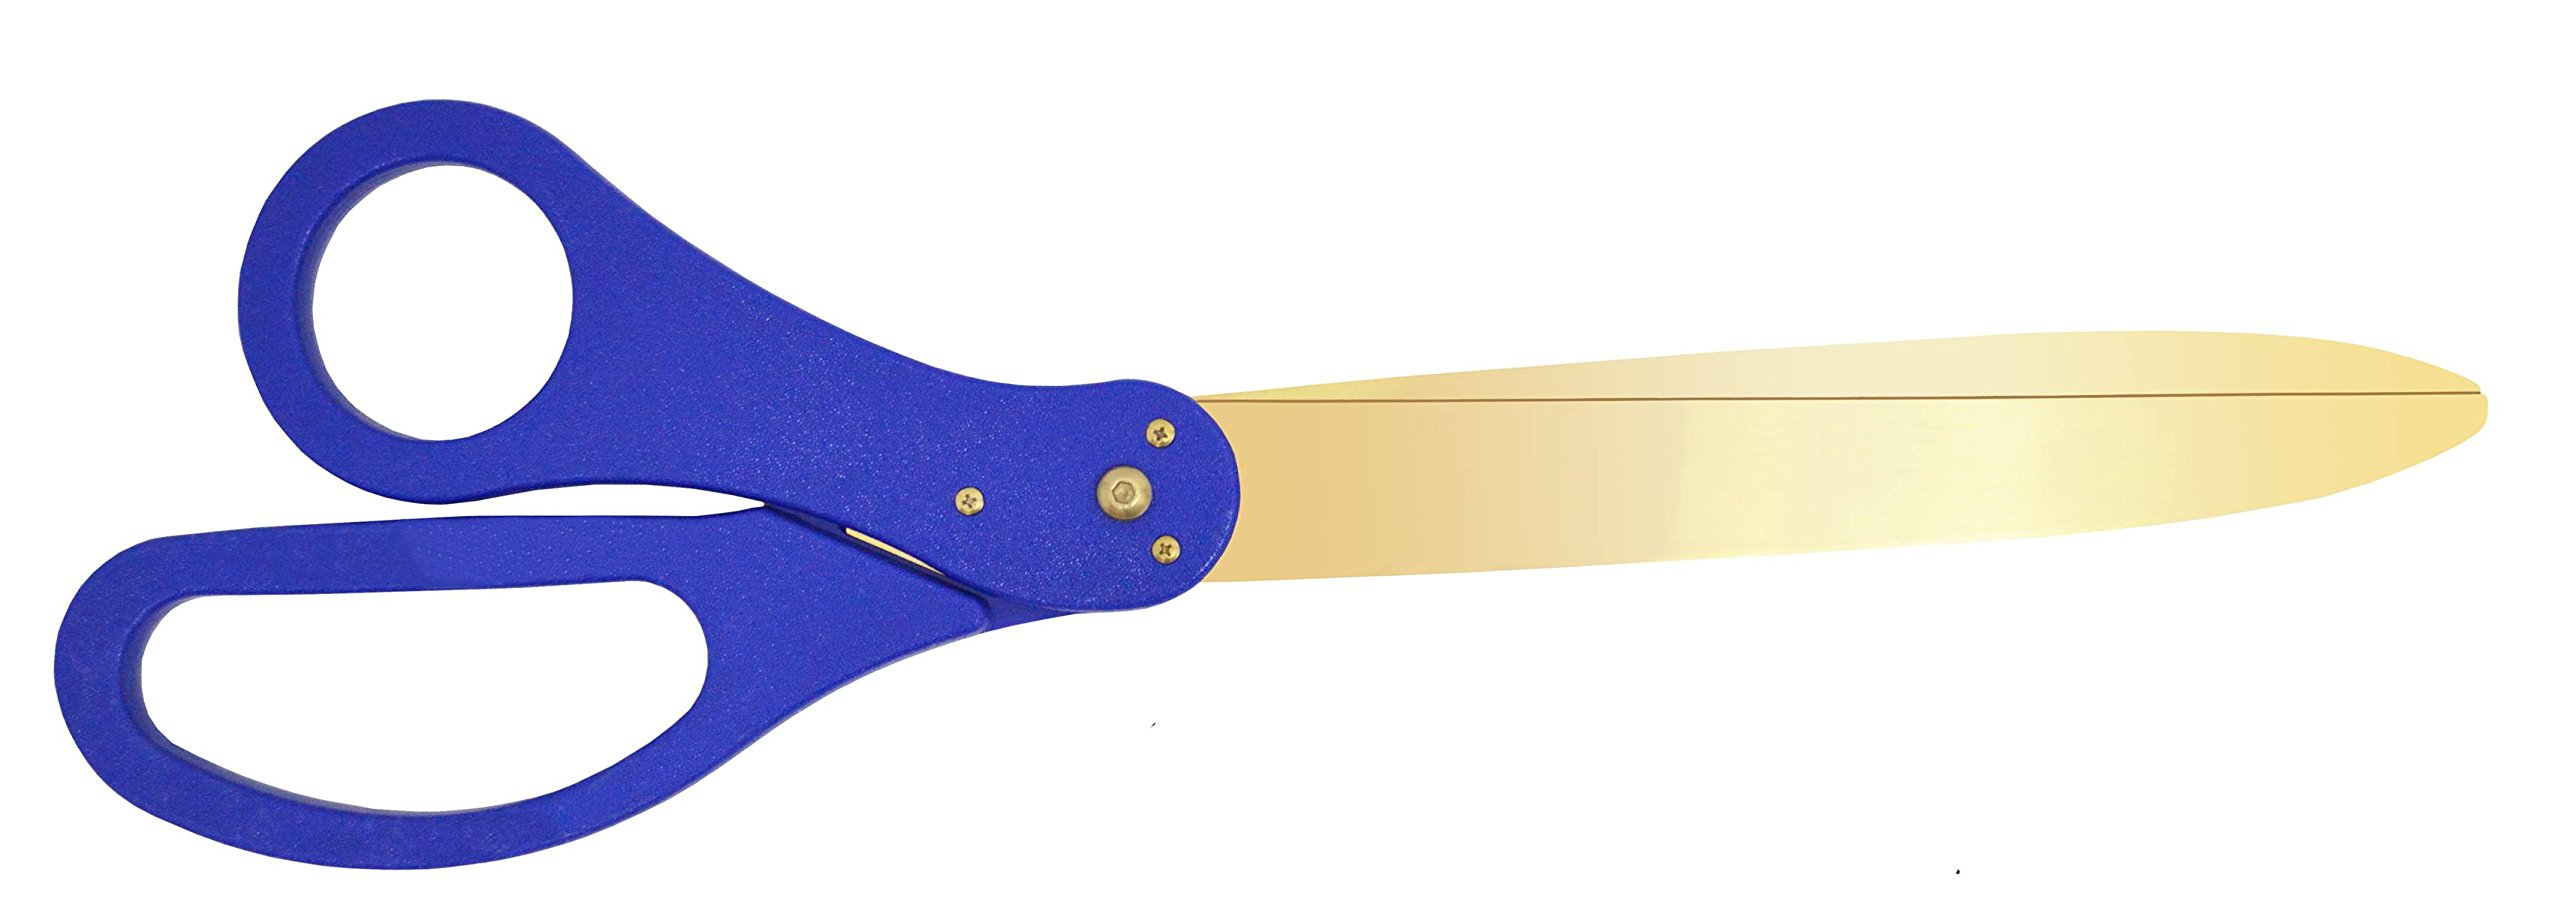 30 Inch Long Gold Color Steel Blade Ribbon Cutting Scissors (Blue)